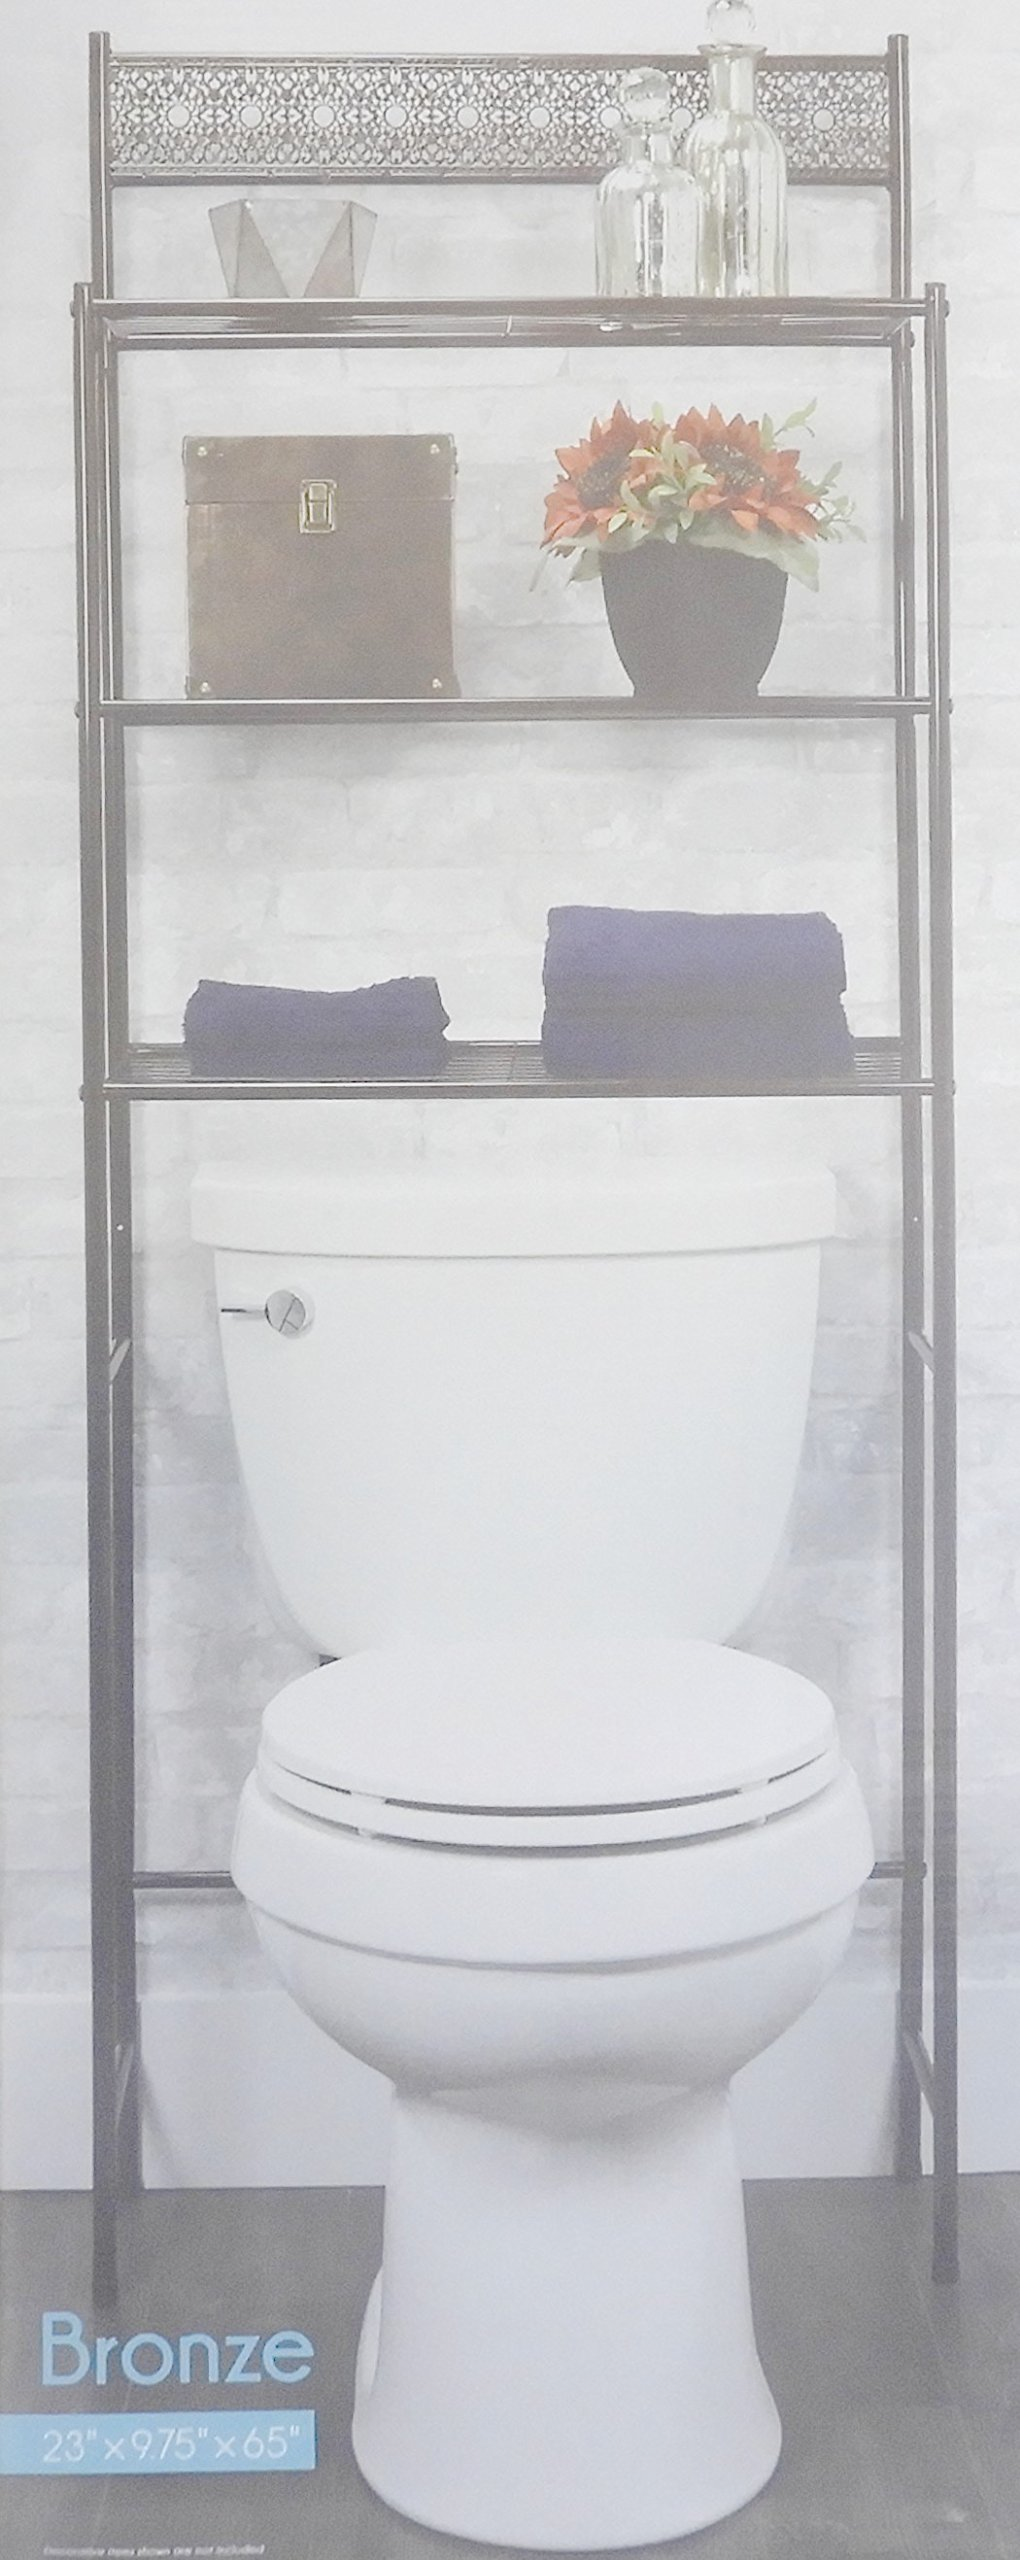 DINY Home Collections 3 Shelf Over The Toilet Spacesaver Easy to Assemble (Bronze) 65'' Tall